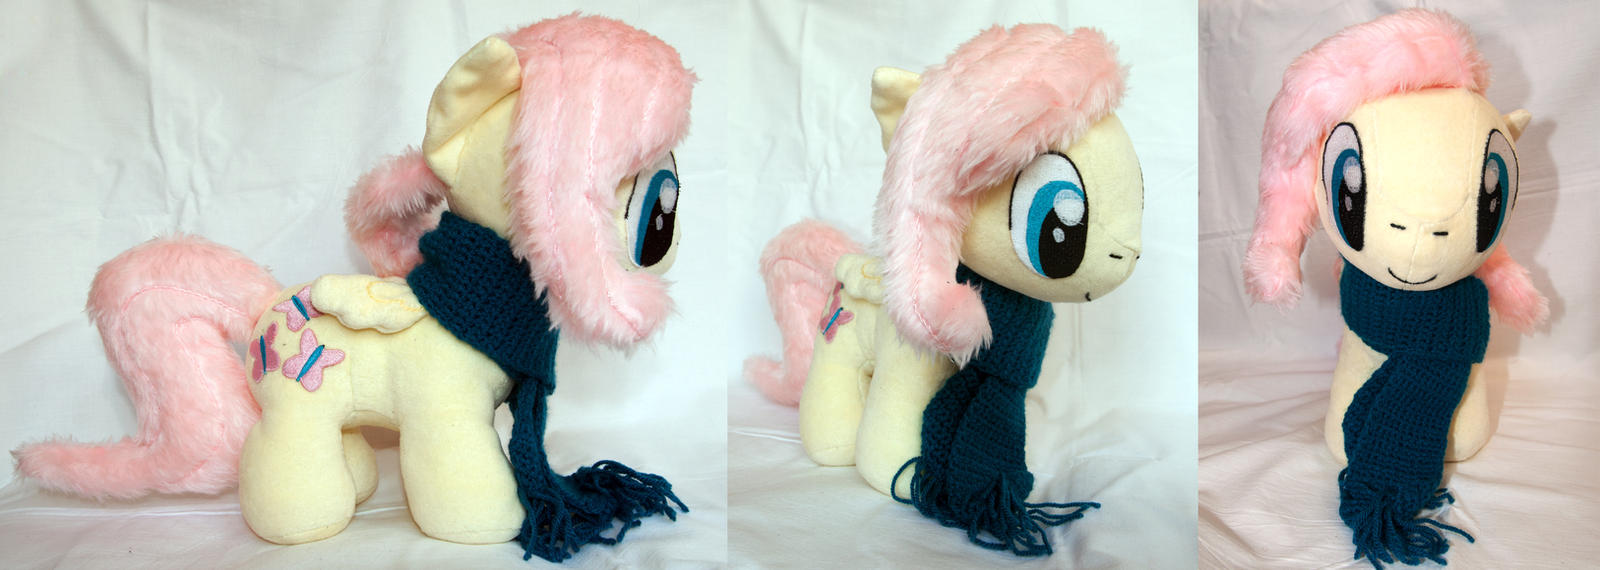 Fluttershy - Chibi/Filly Plush by TadStone